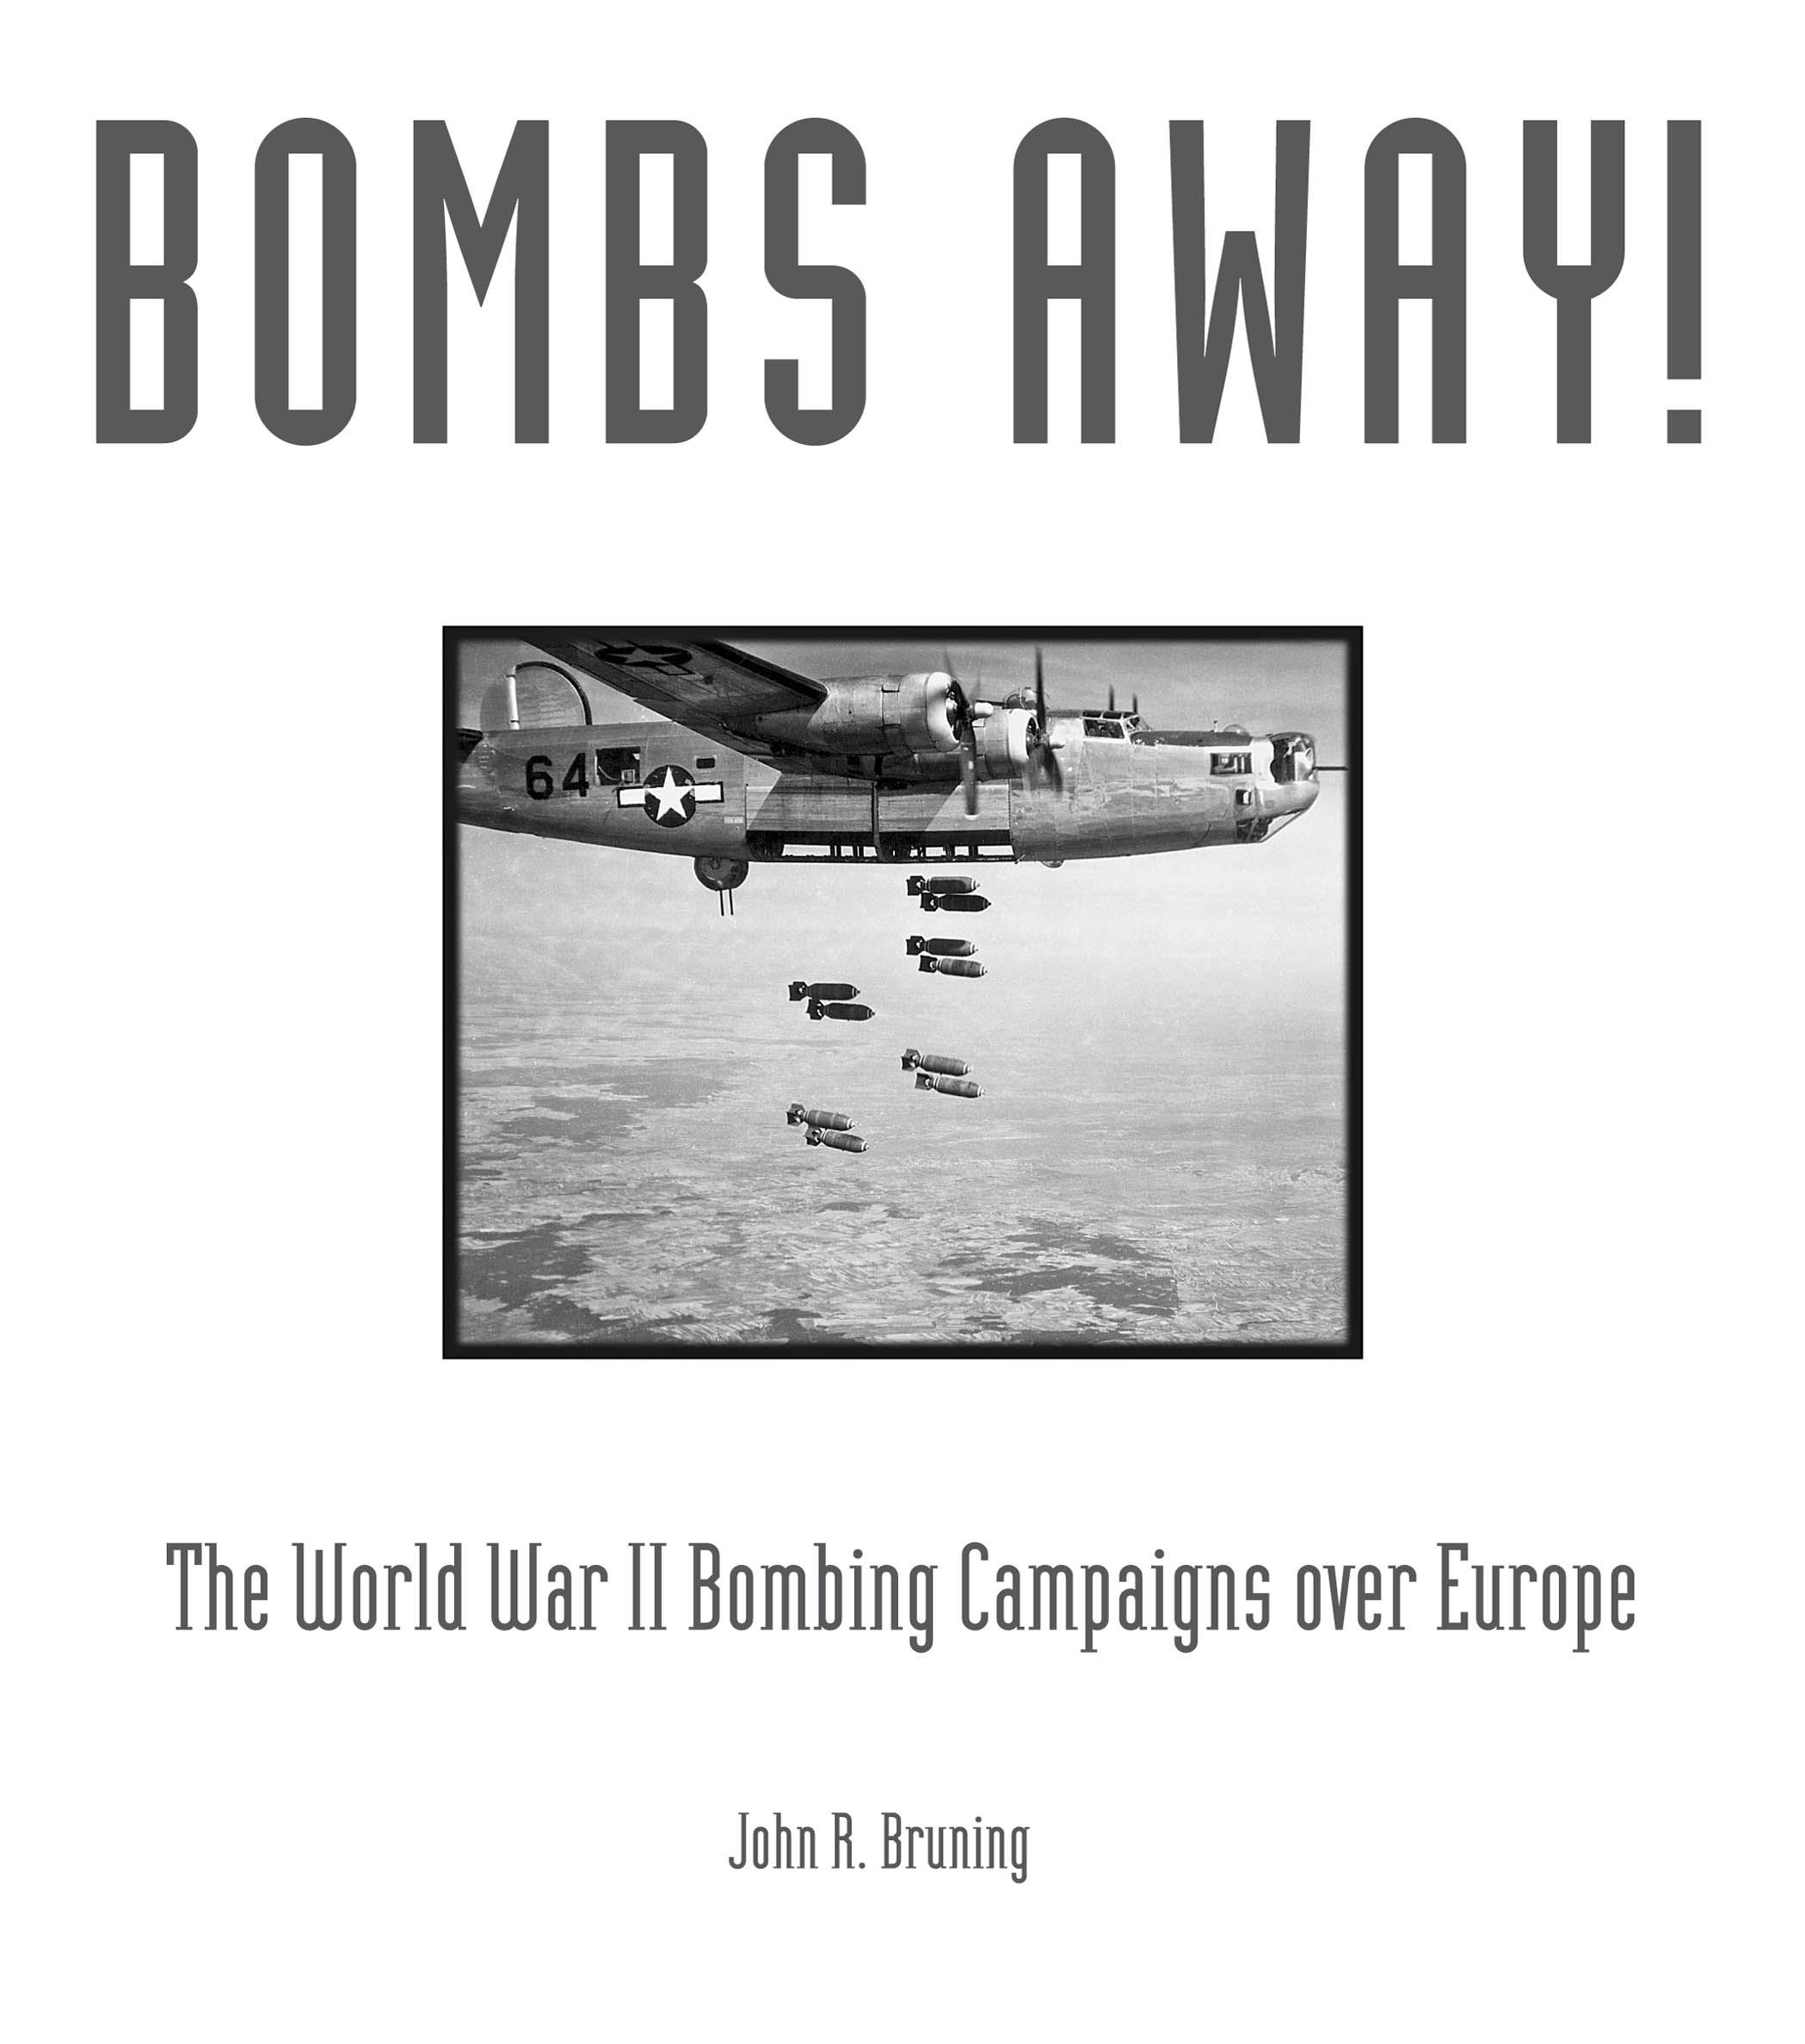 Bombs Away!: The World War II Bombing Campaigns over Europe